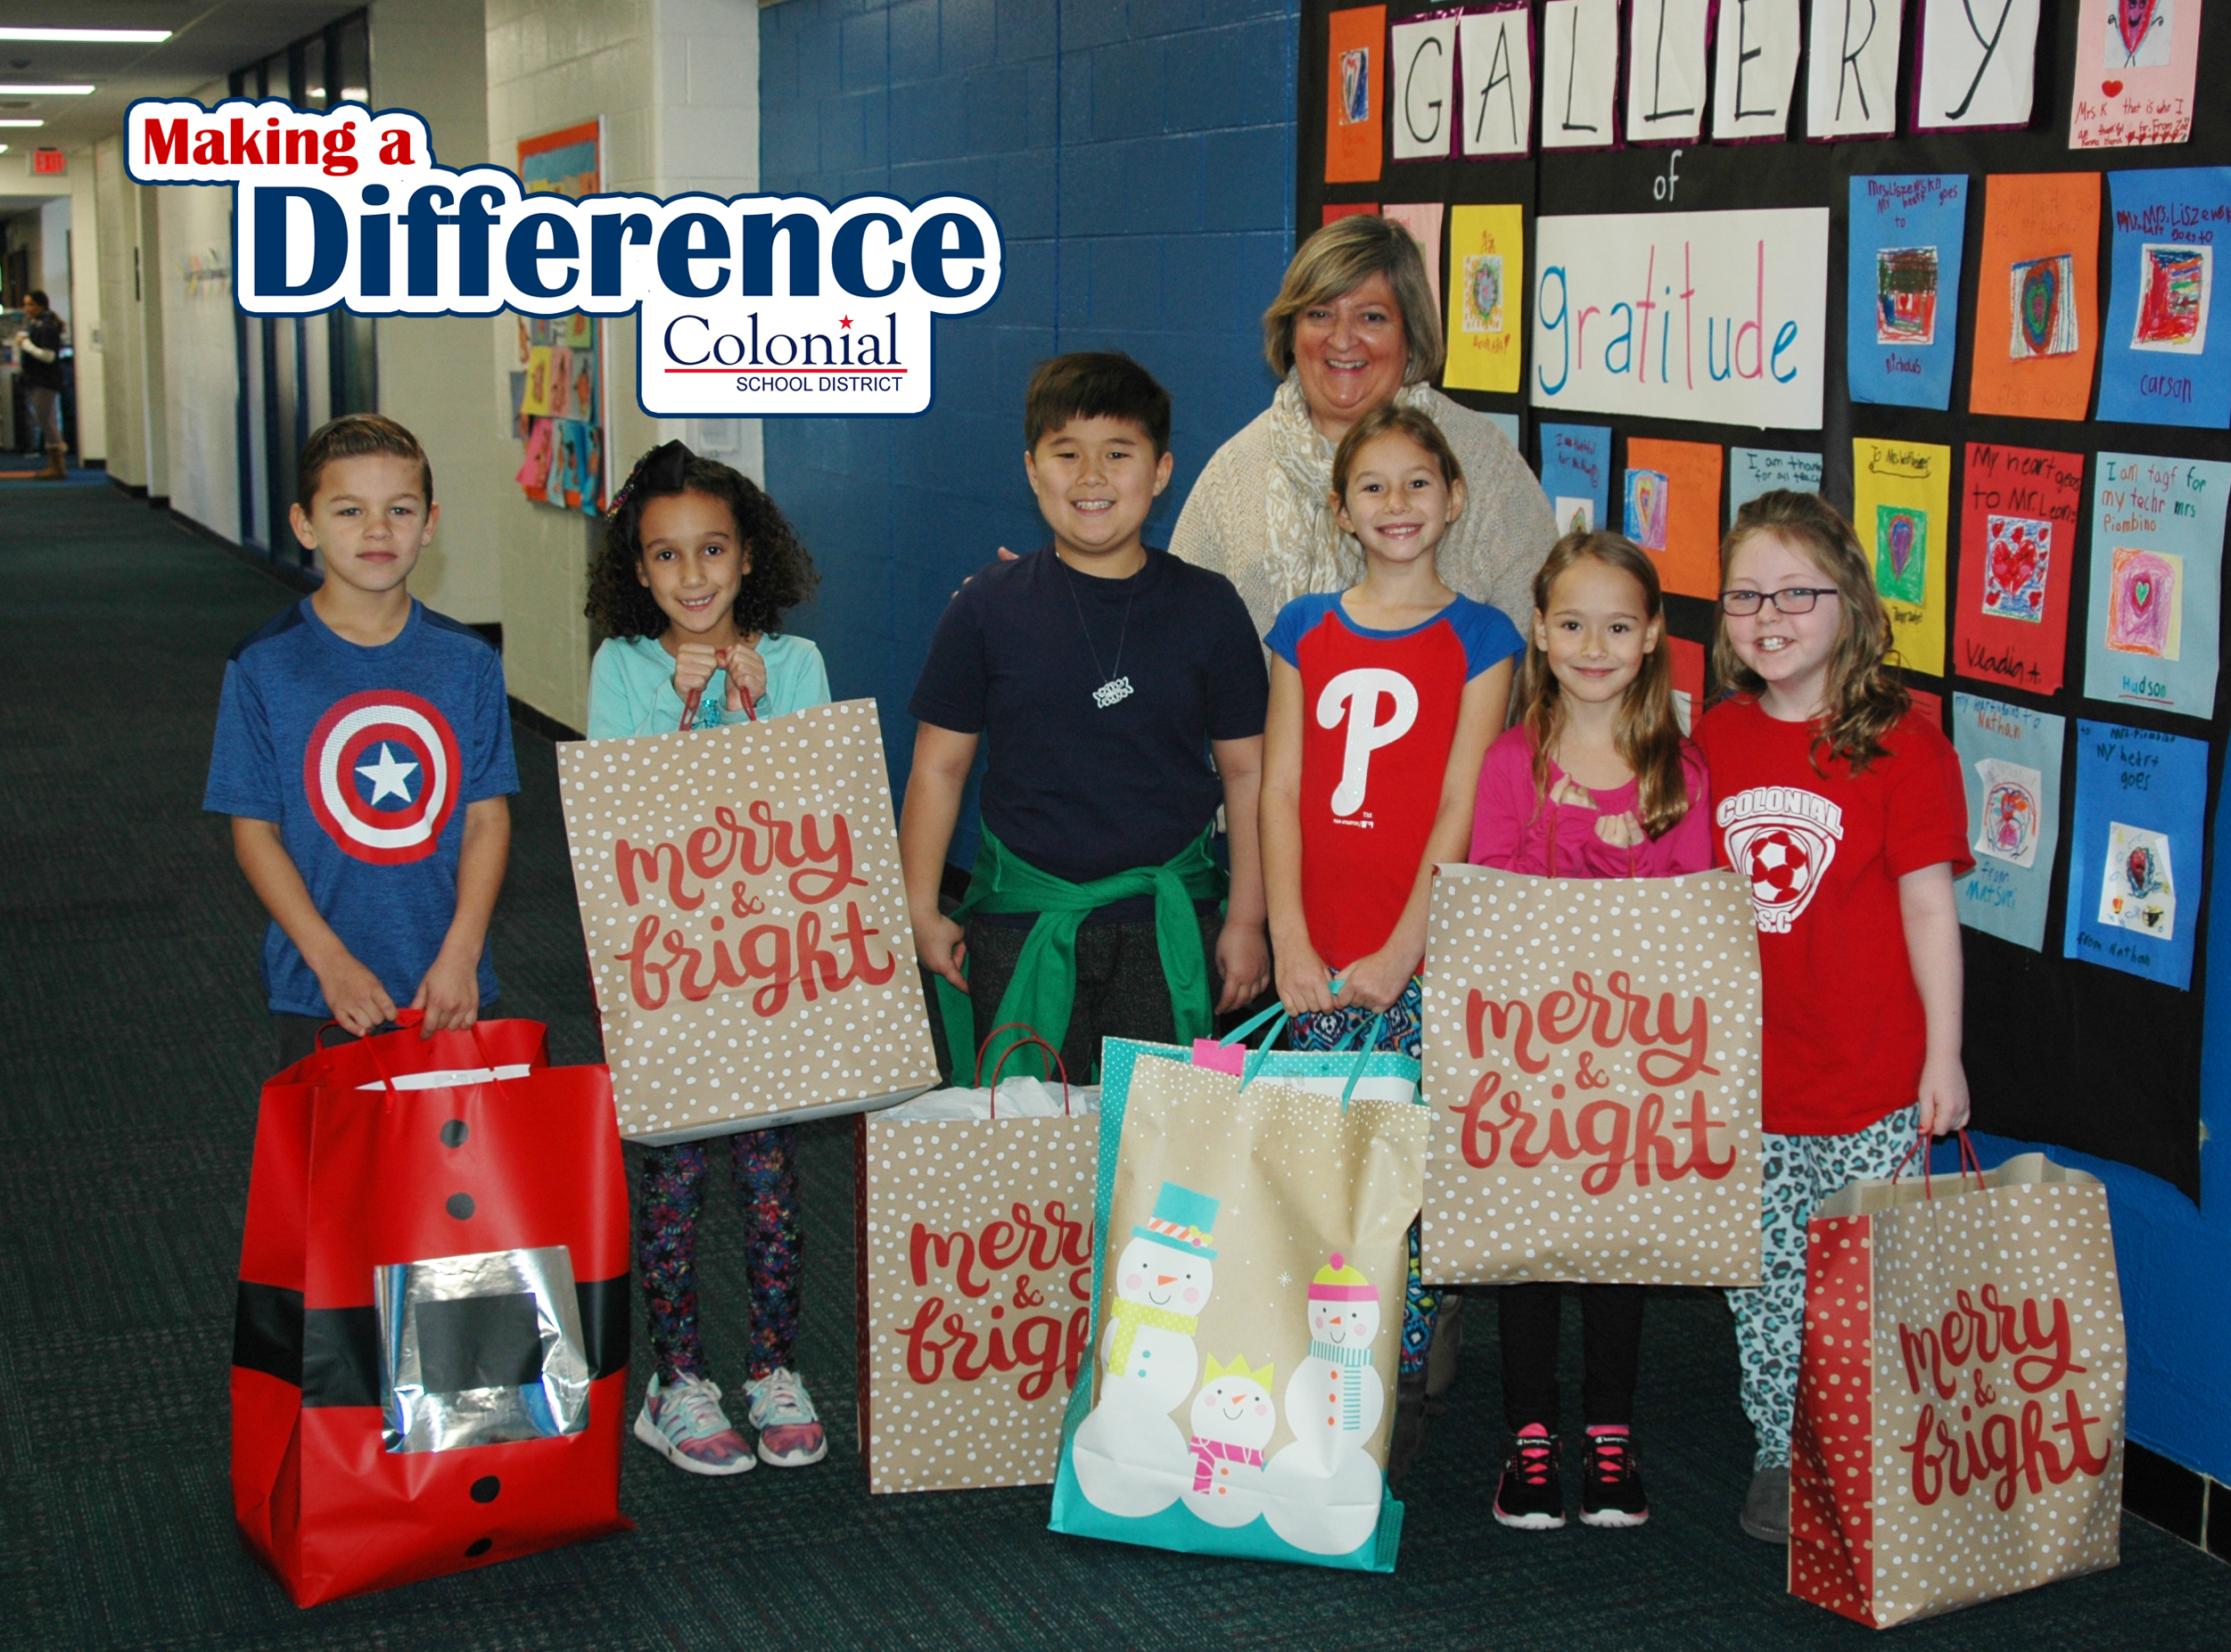 Six students and a teacher holding holiday gift bags.